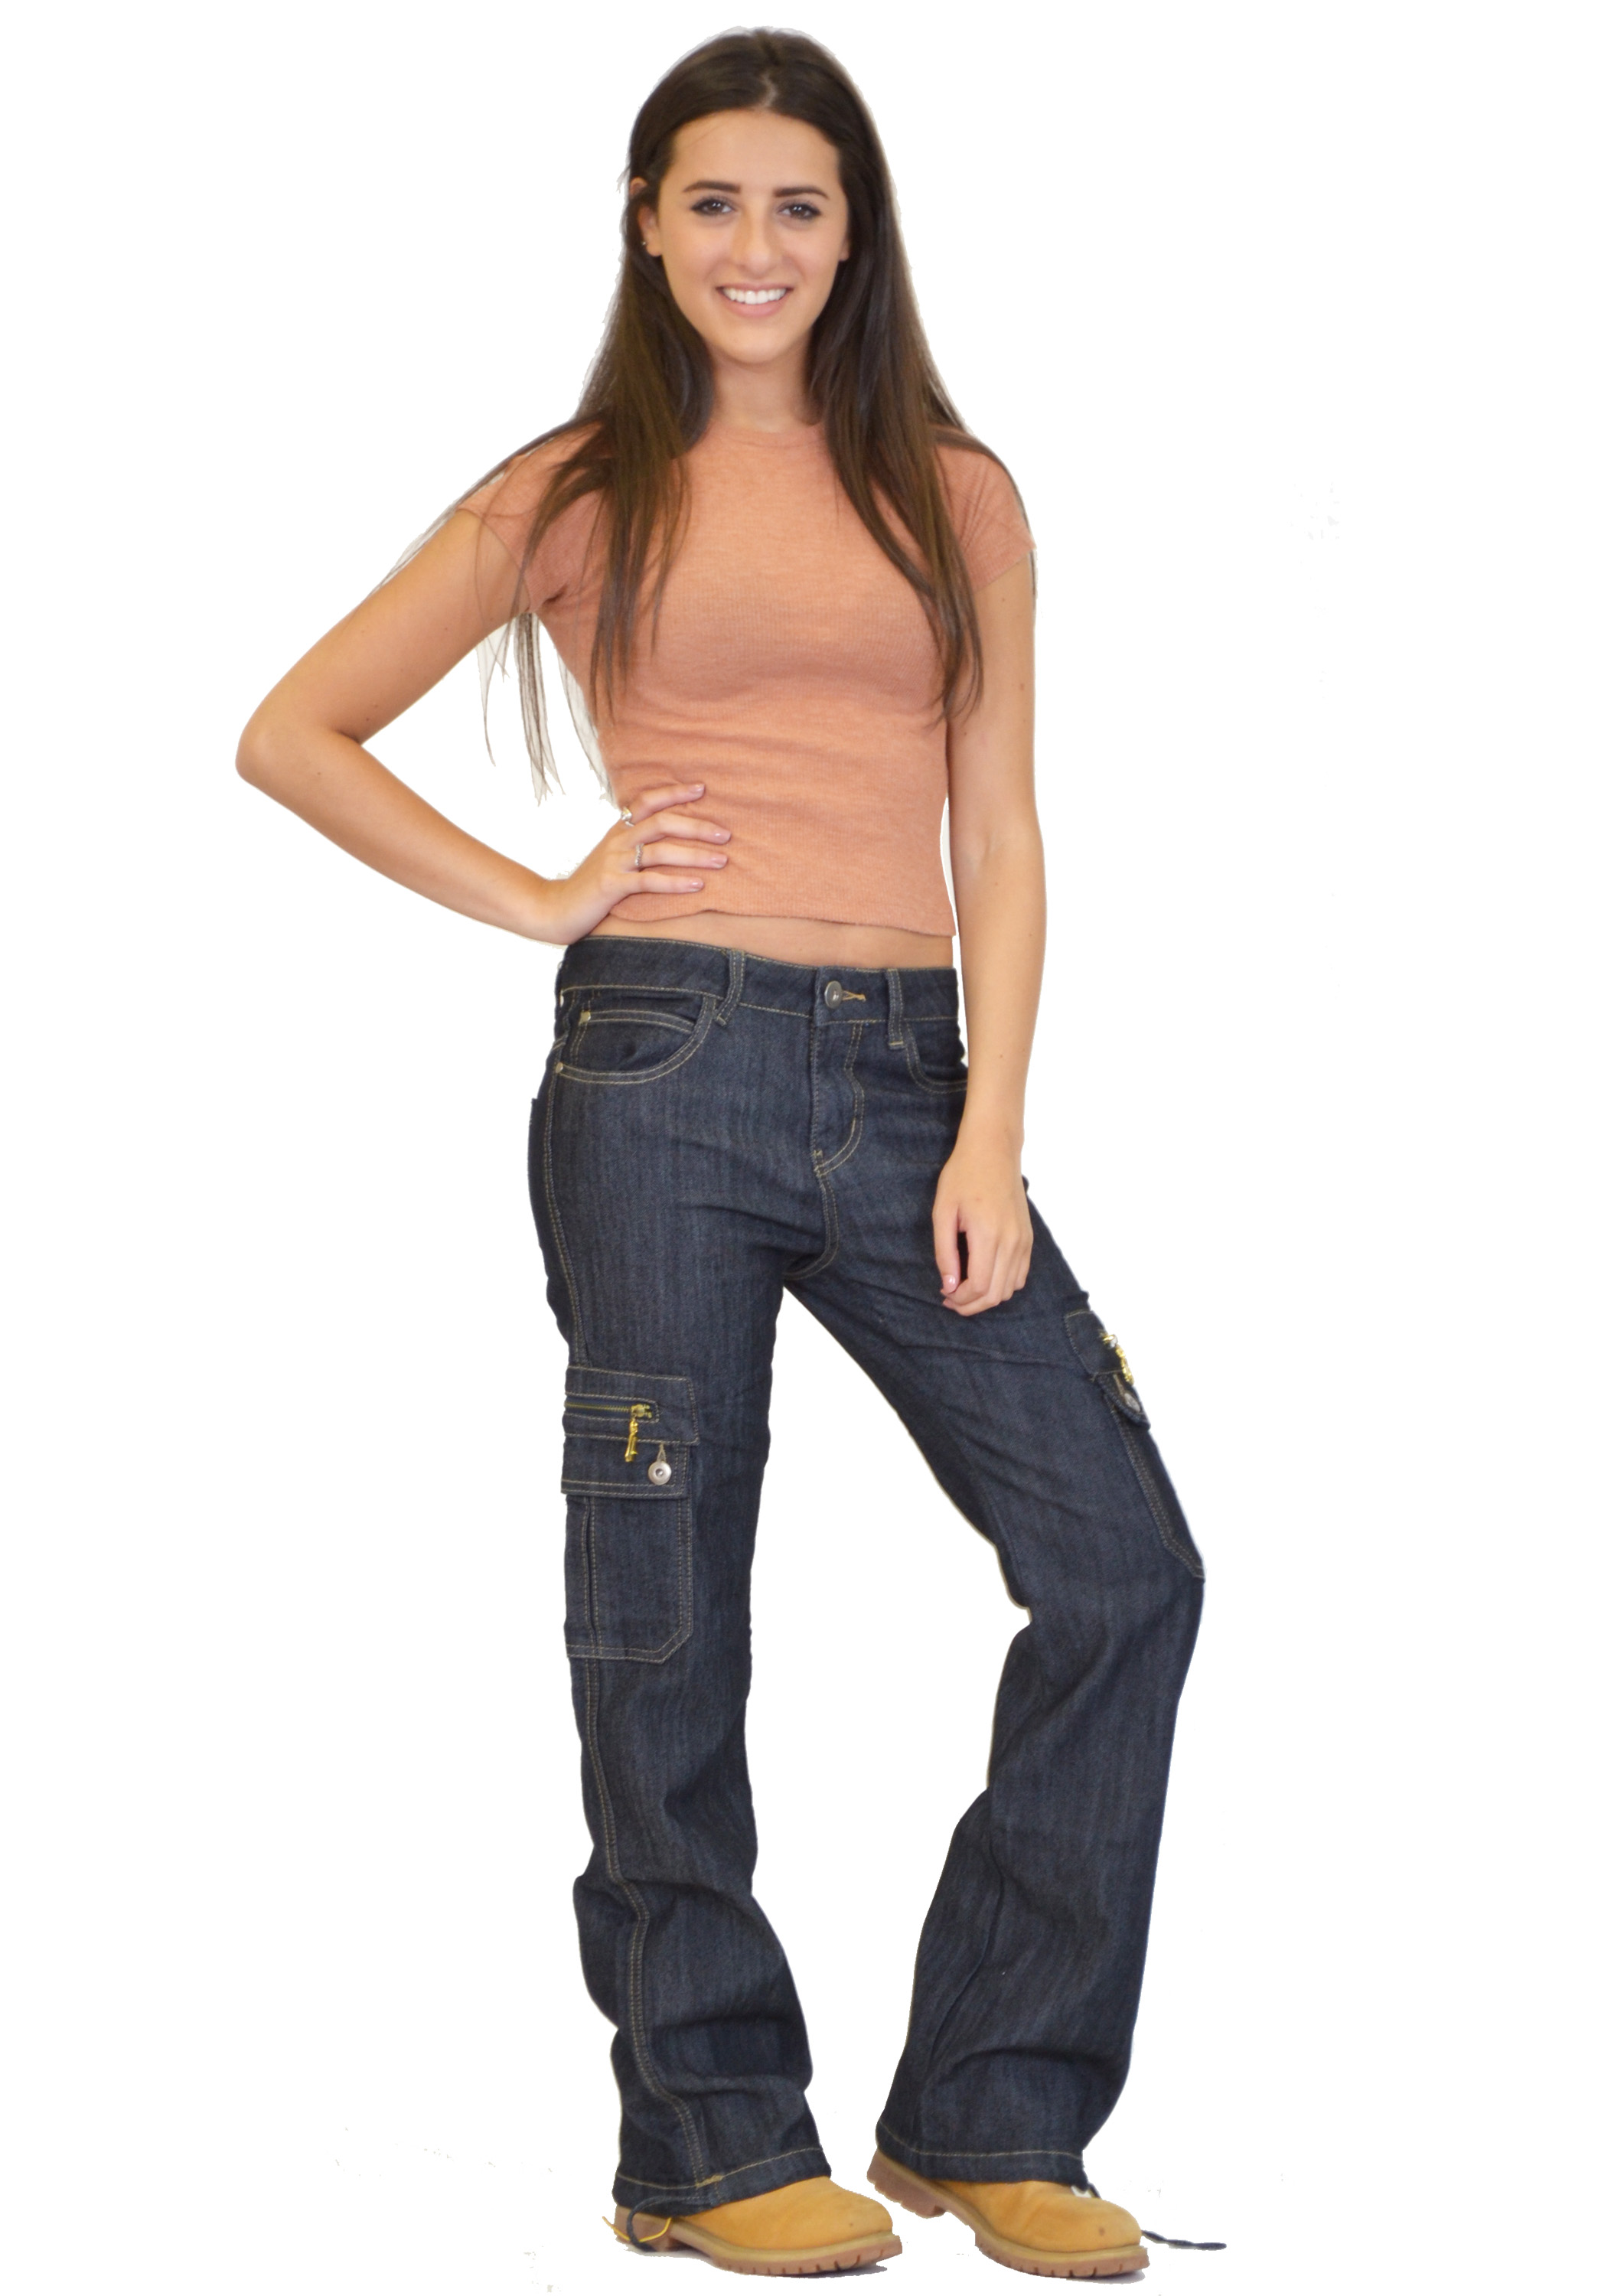 Women's Jeans. Discover designer and brand name women's jeggings, skinny jeans, straight jeans, bootcut jeans and flare jeans for women. Plus, we are tracking trends in colored jeans, high rise denim and special hem details for women! Find your favorite fit with slim fit jeans for women, regular fit jeans, curvy jeans for women and boyfriend jeans.